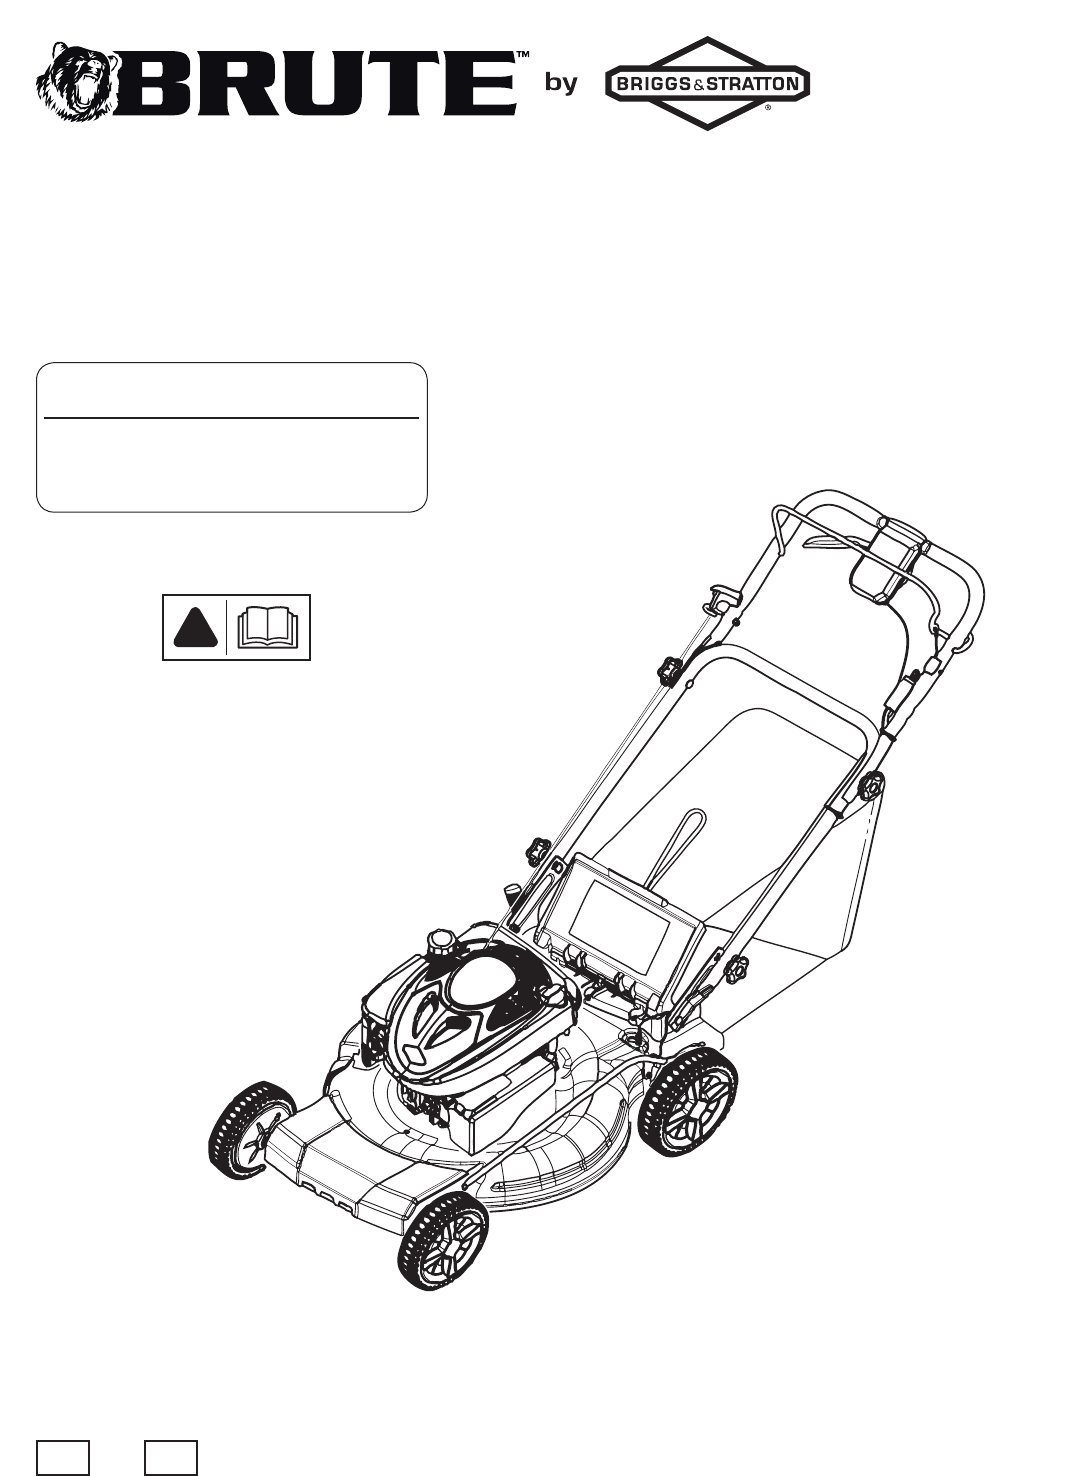 Briggs Amp Stratton Lawn Mower Btxpv User Guide